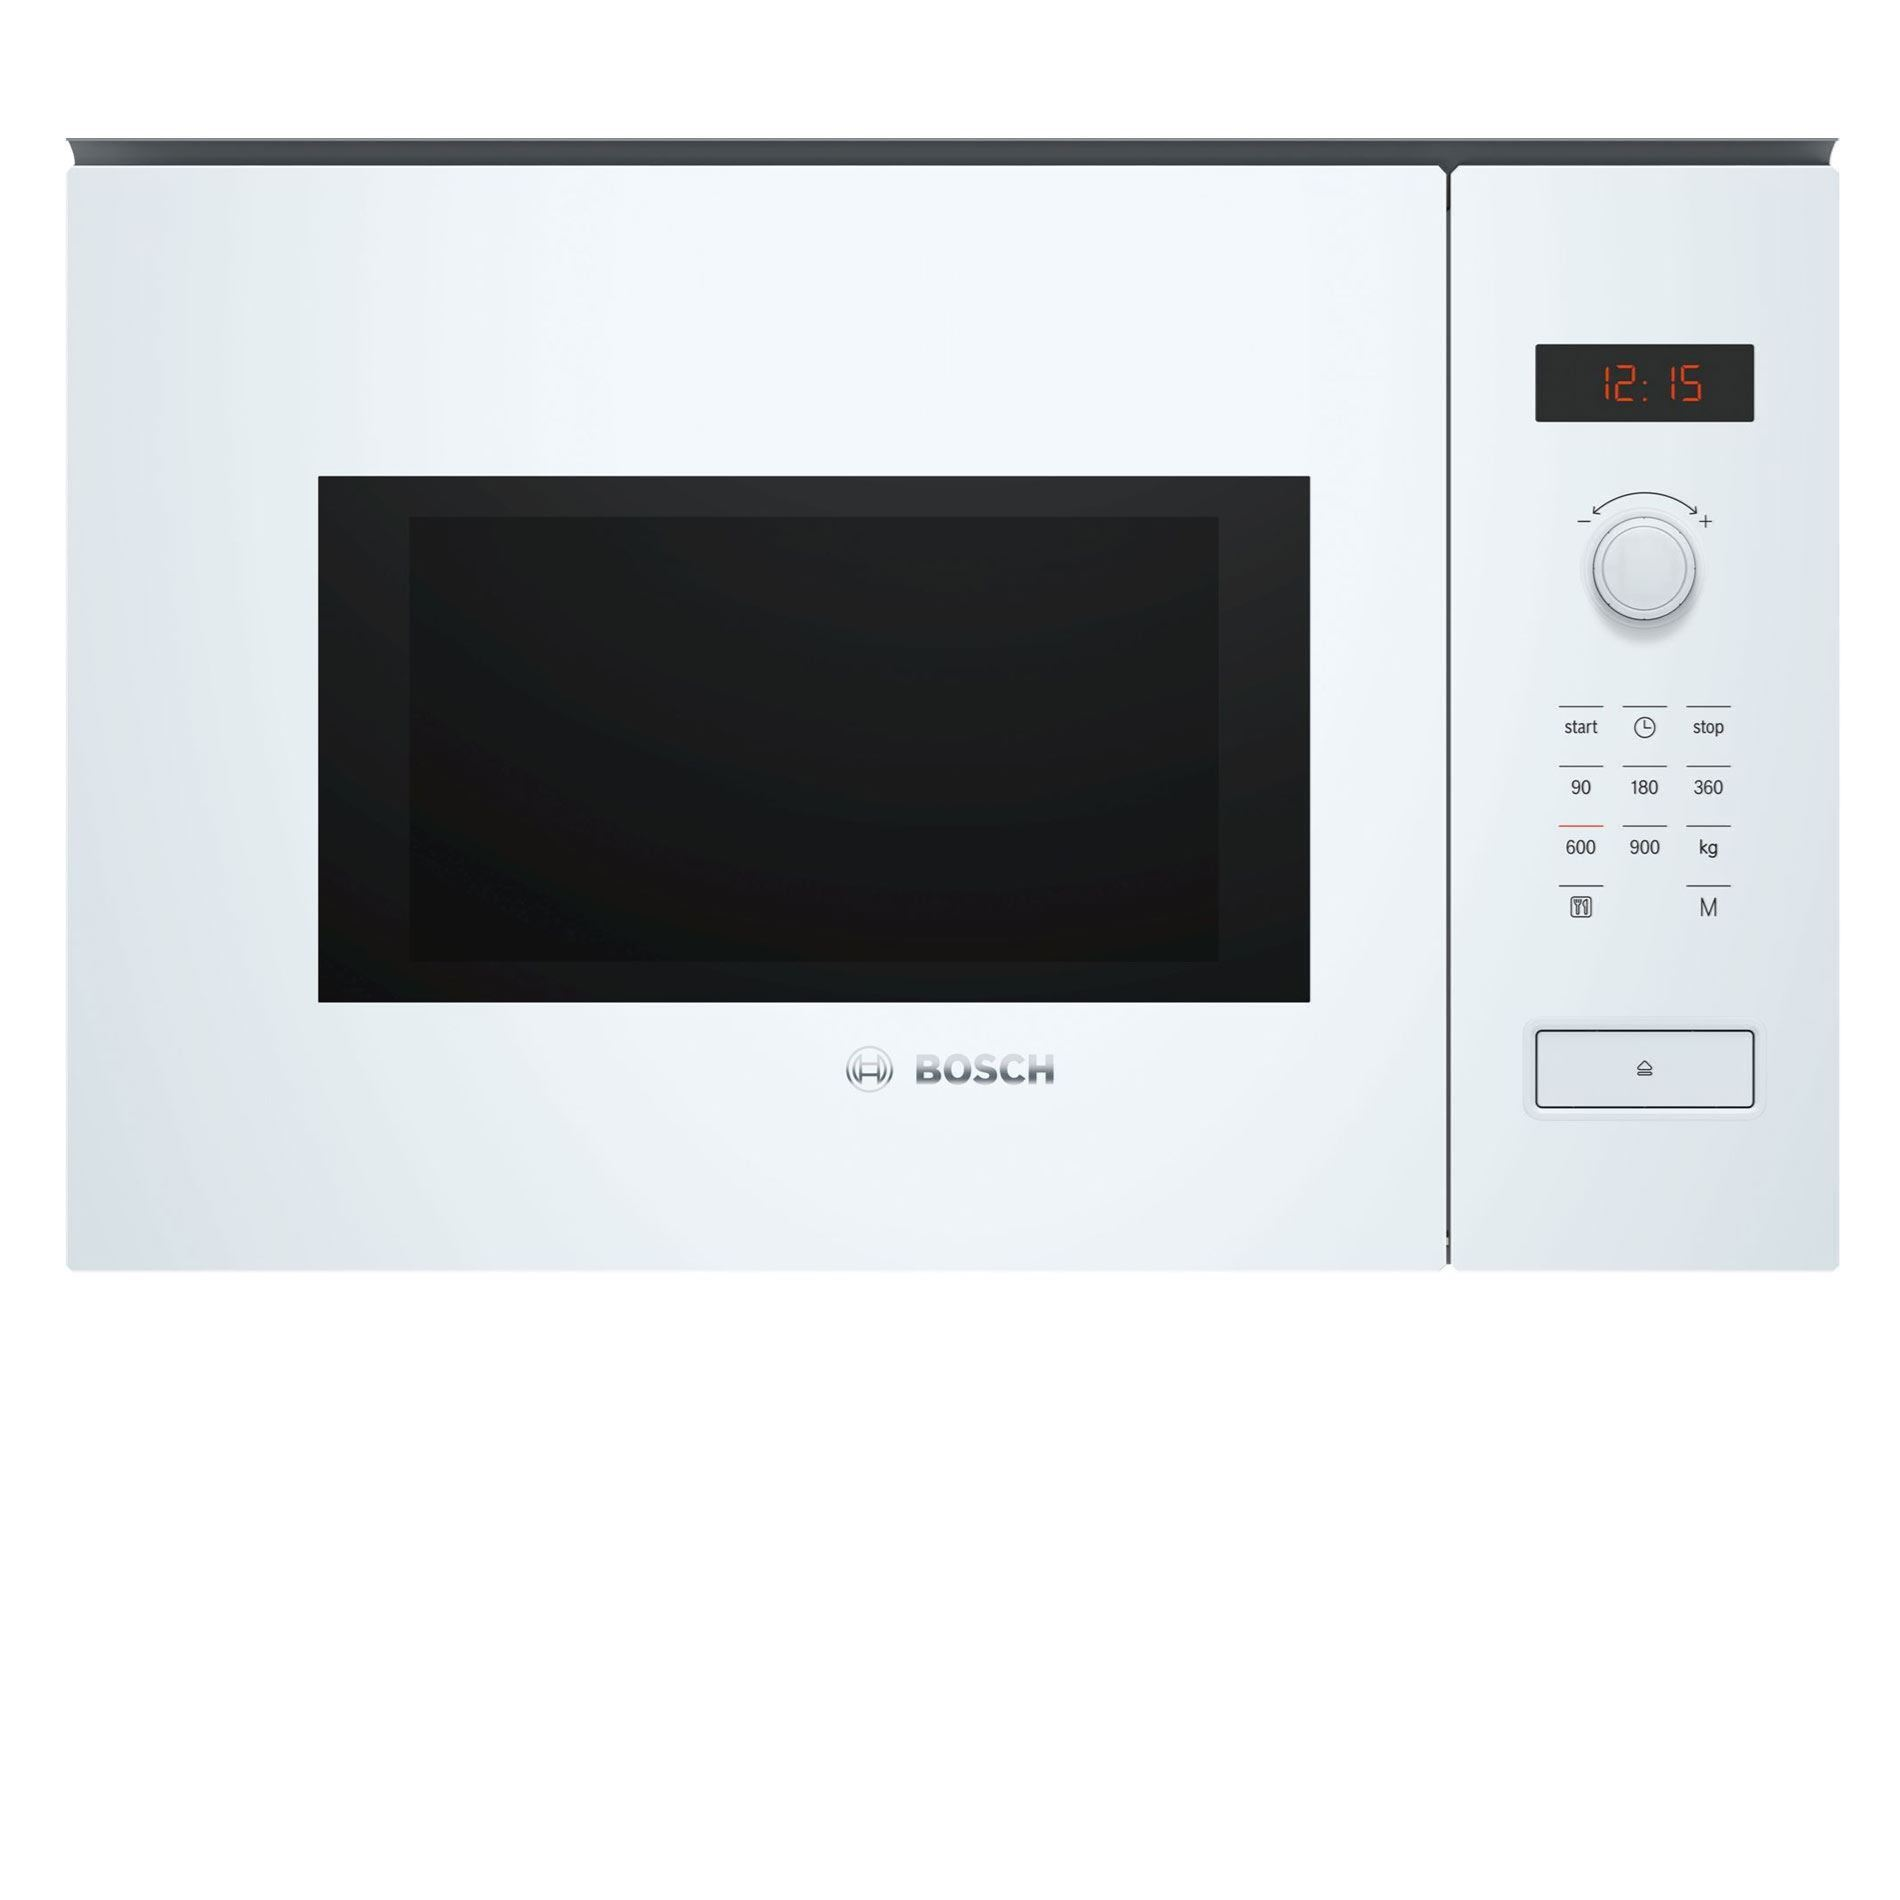 bosch bfl553mw0b white built in microwave oven